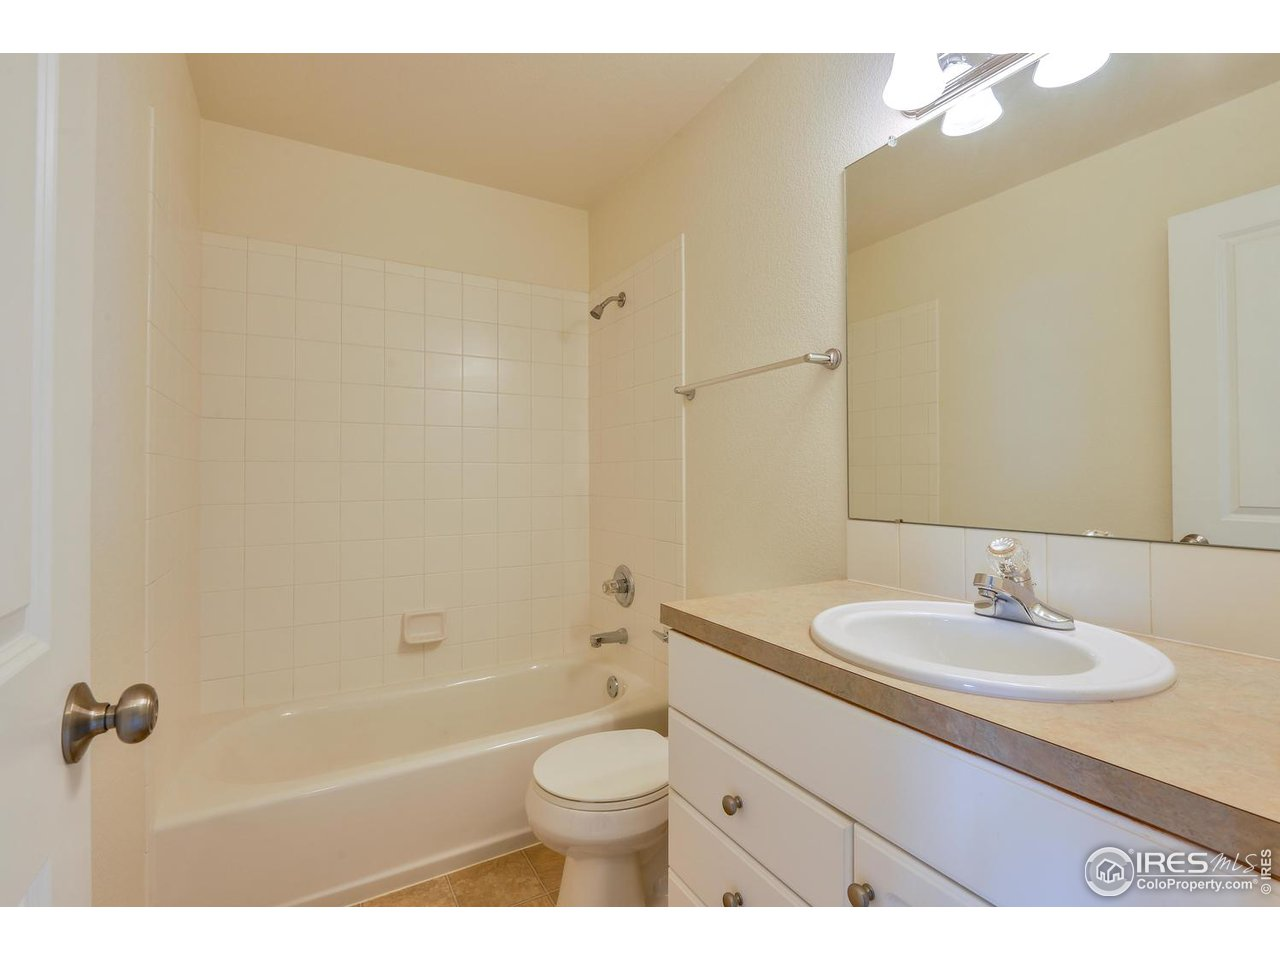 Shared Full Bath - 2nd Floor